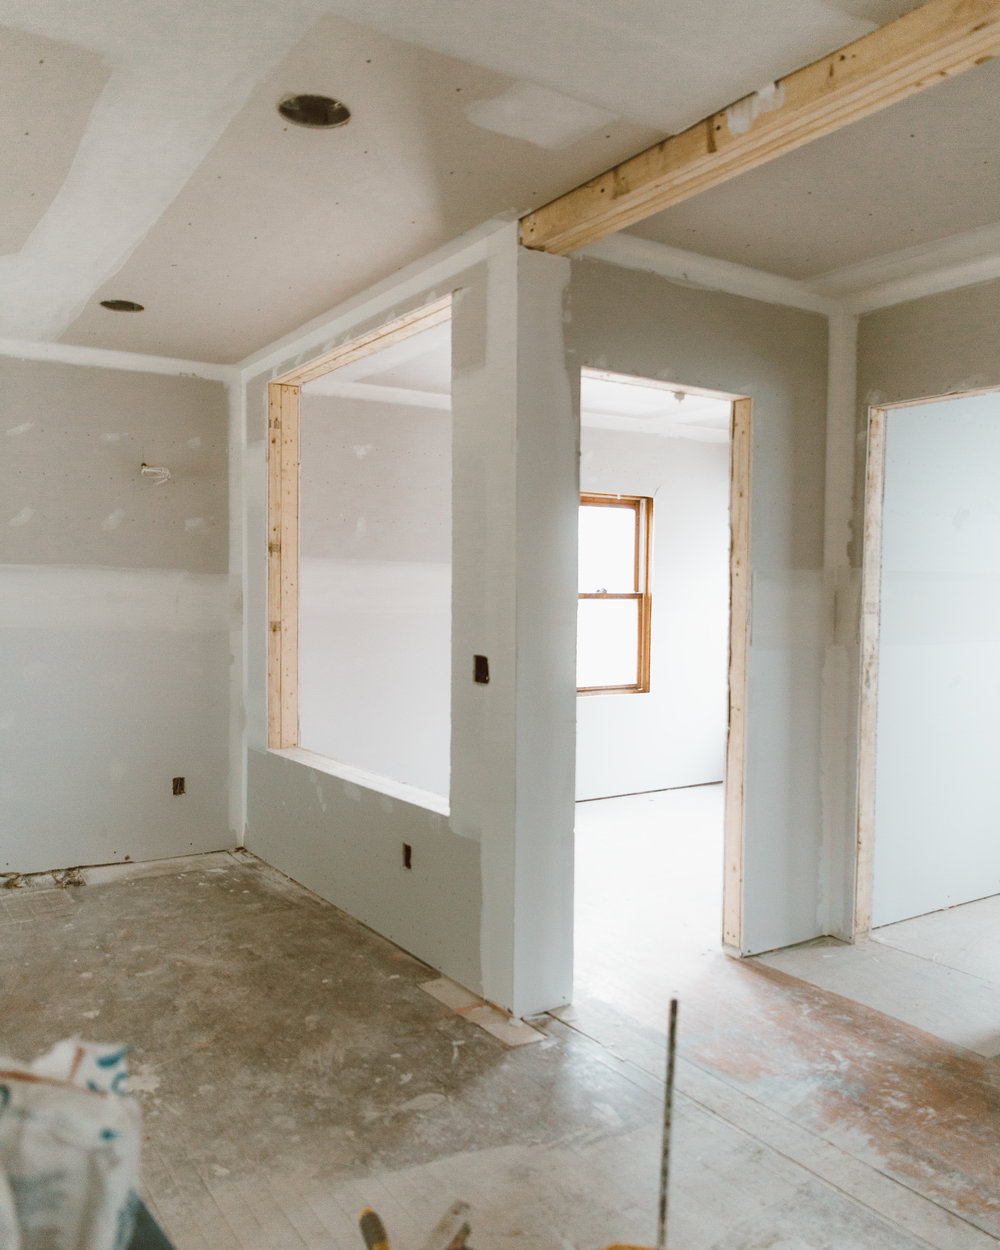 forthehome-renovation-drywall0005.jpeg